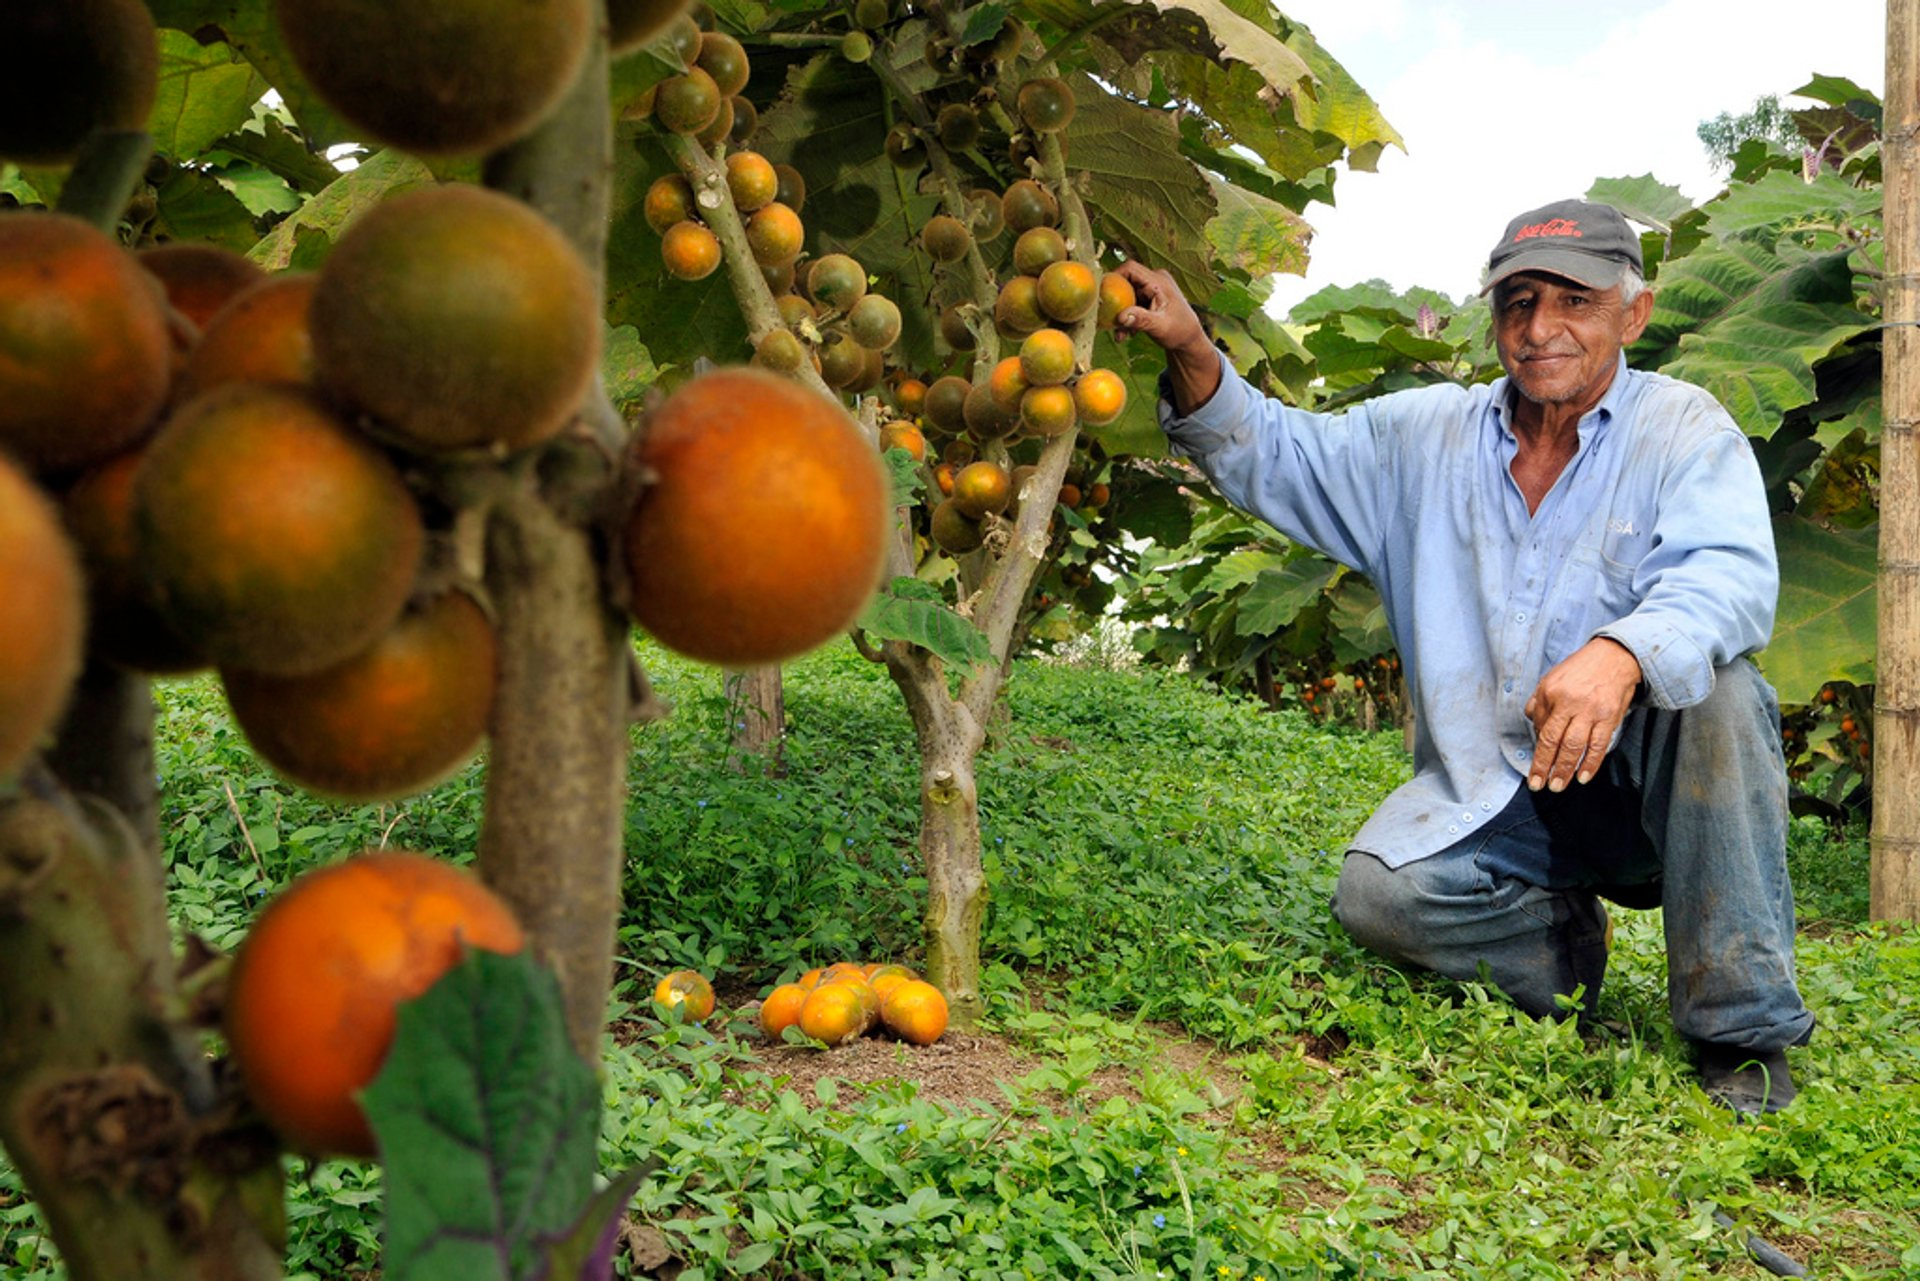 A lulo farmer with his crop of fruit growing in Darién, Colombia 2019